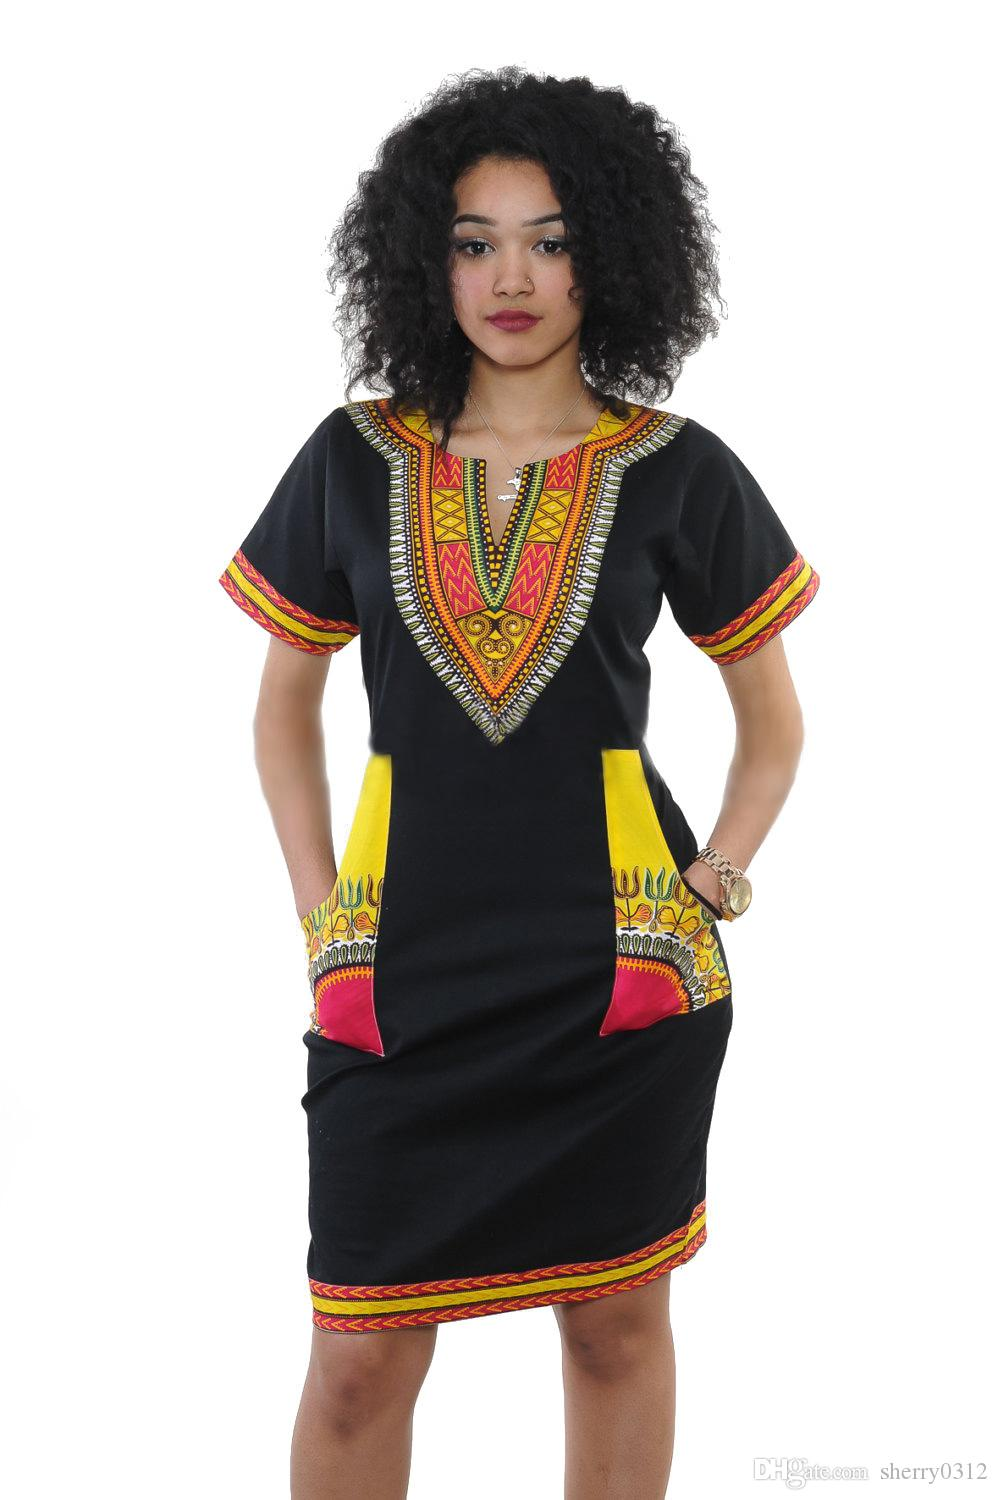 85c13a7d13182 2017 New Fashion African Print Top Dashiki Shirt For African Women African  Dashiki Long Sleeve V Neck Bodycon Dress Good Strenchy 4 Style White Lace  ...